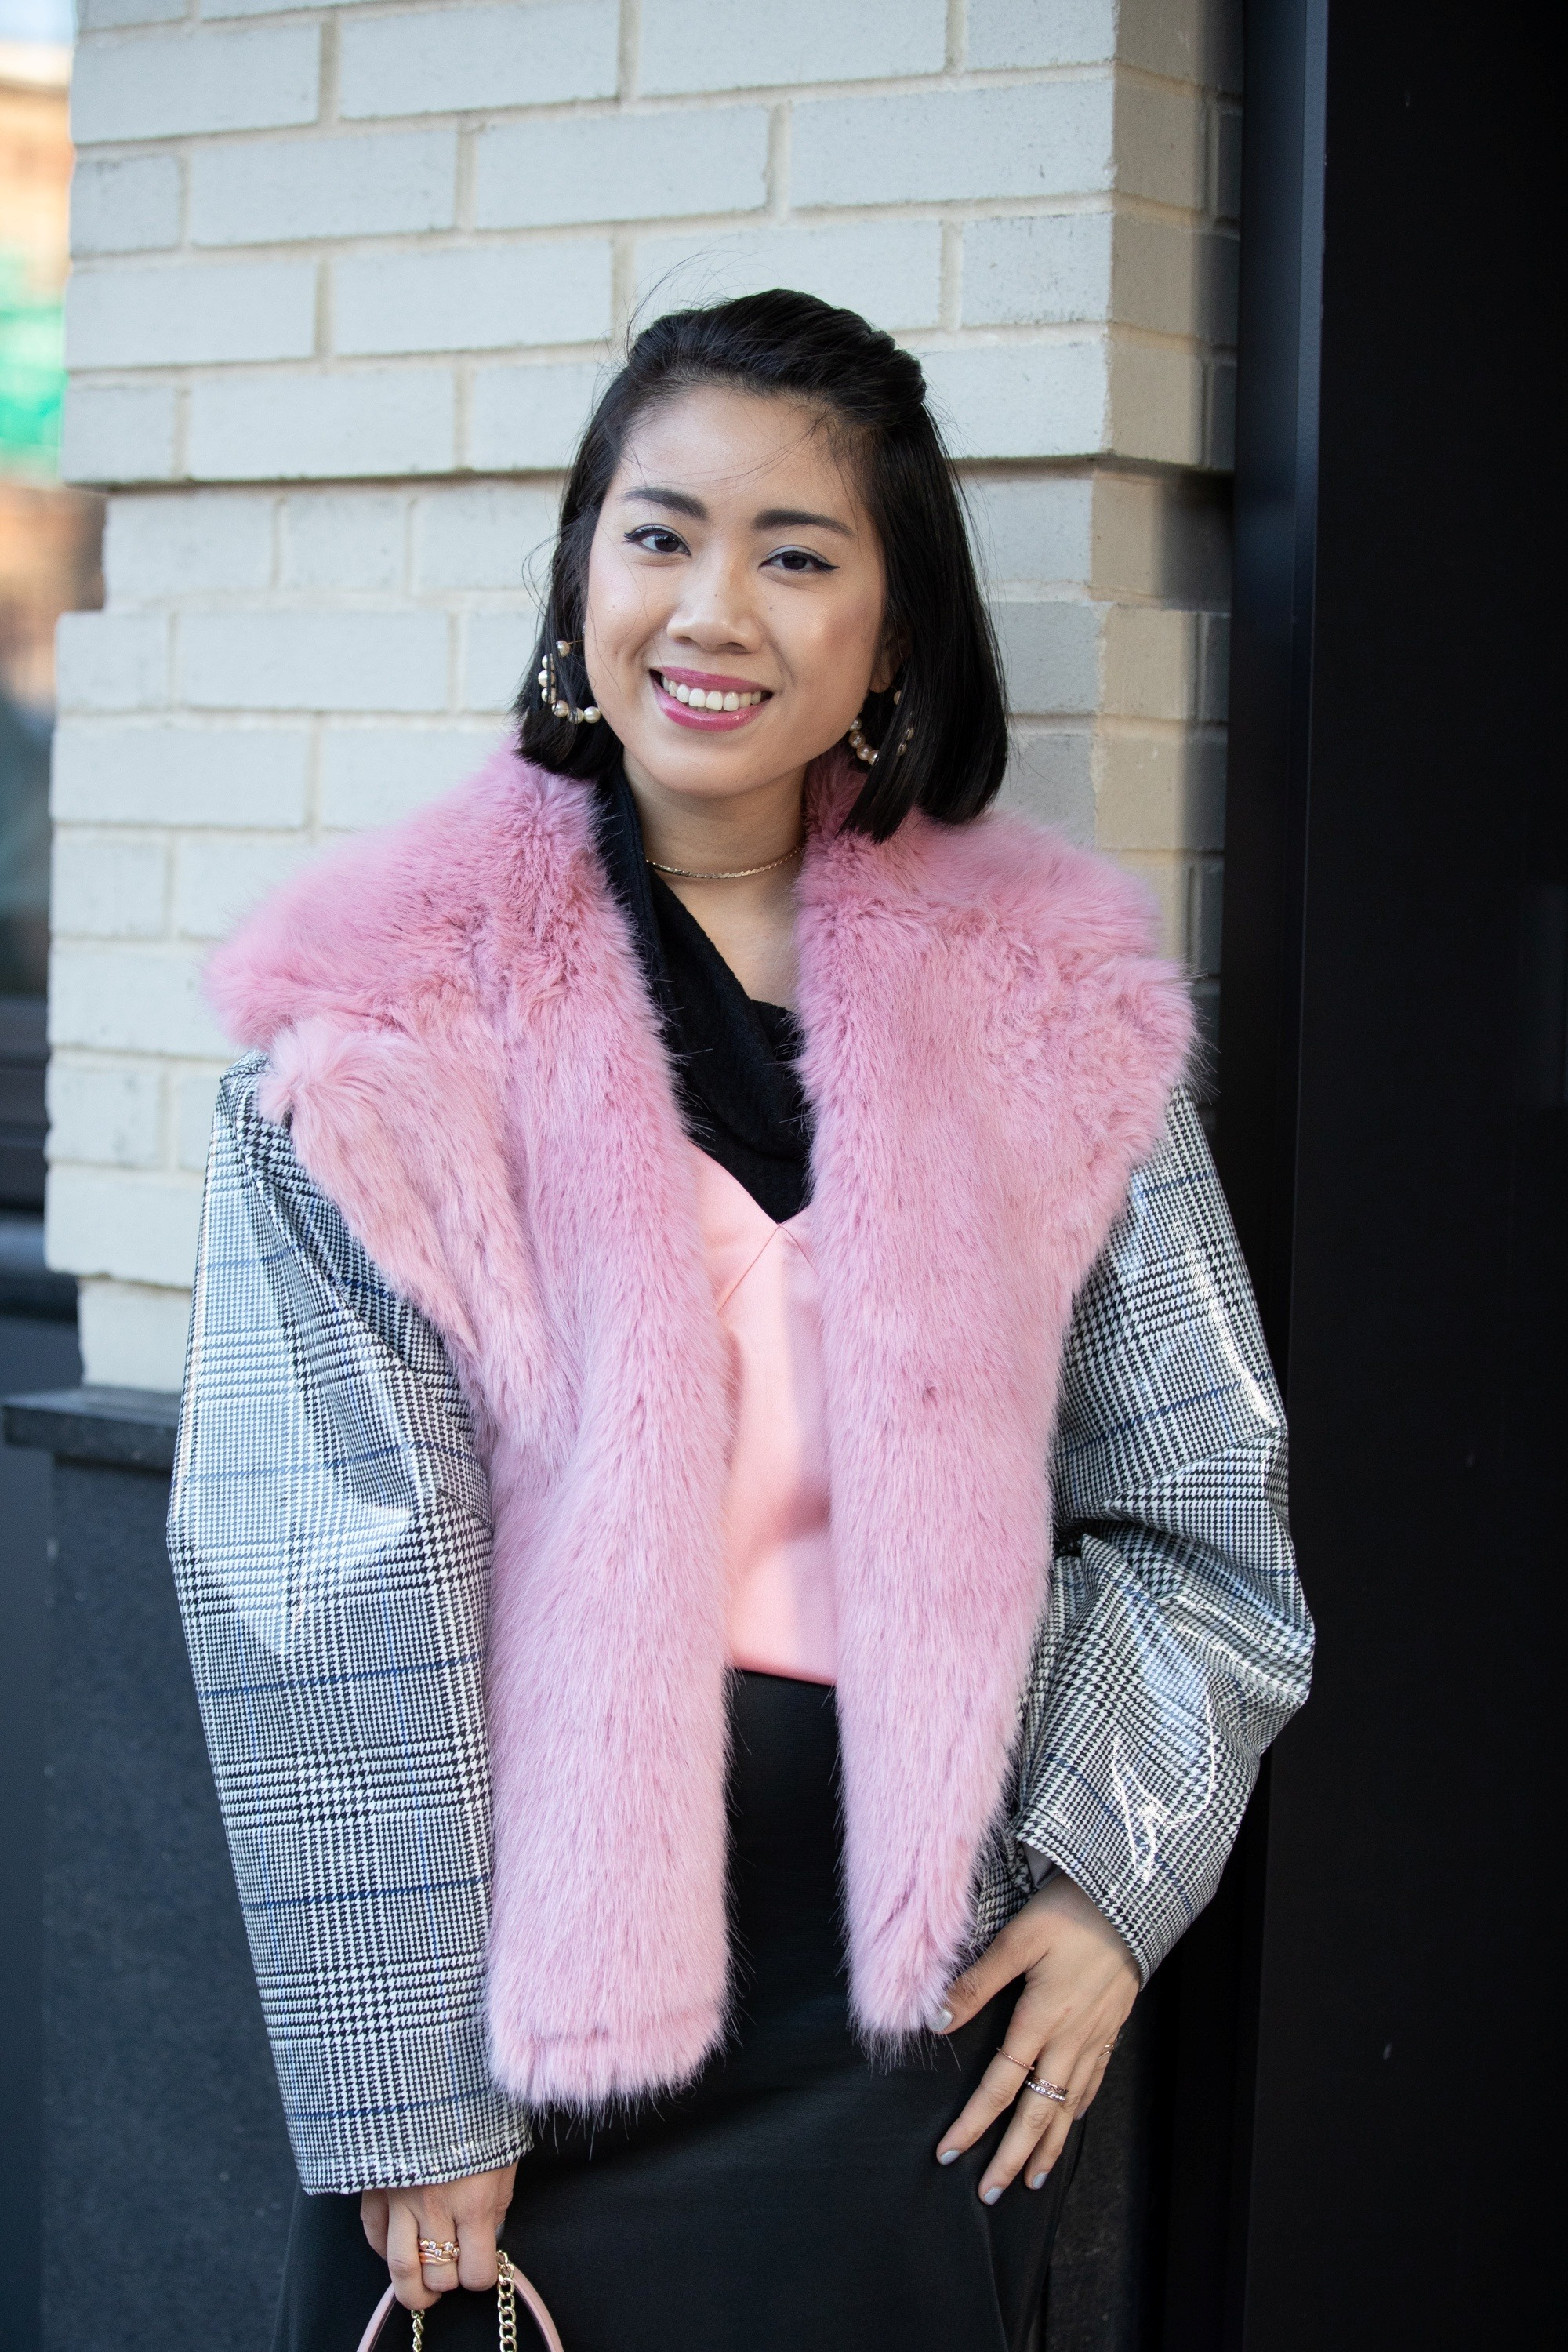 Street style hair inspiration: Asian woman with short black bob wearing a pink furry vest outdoors